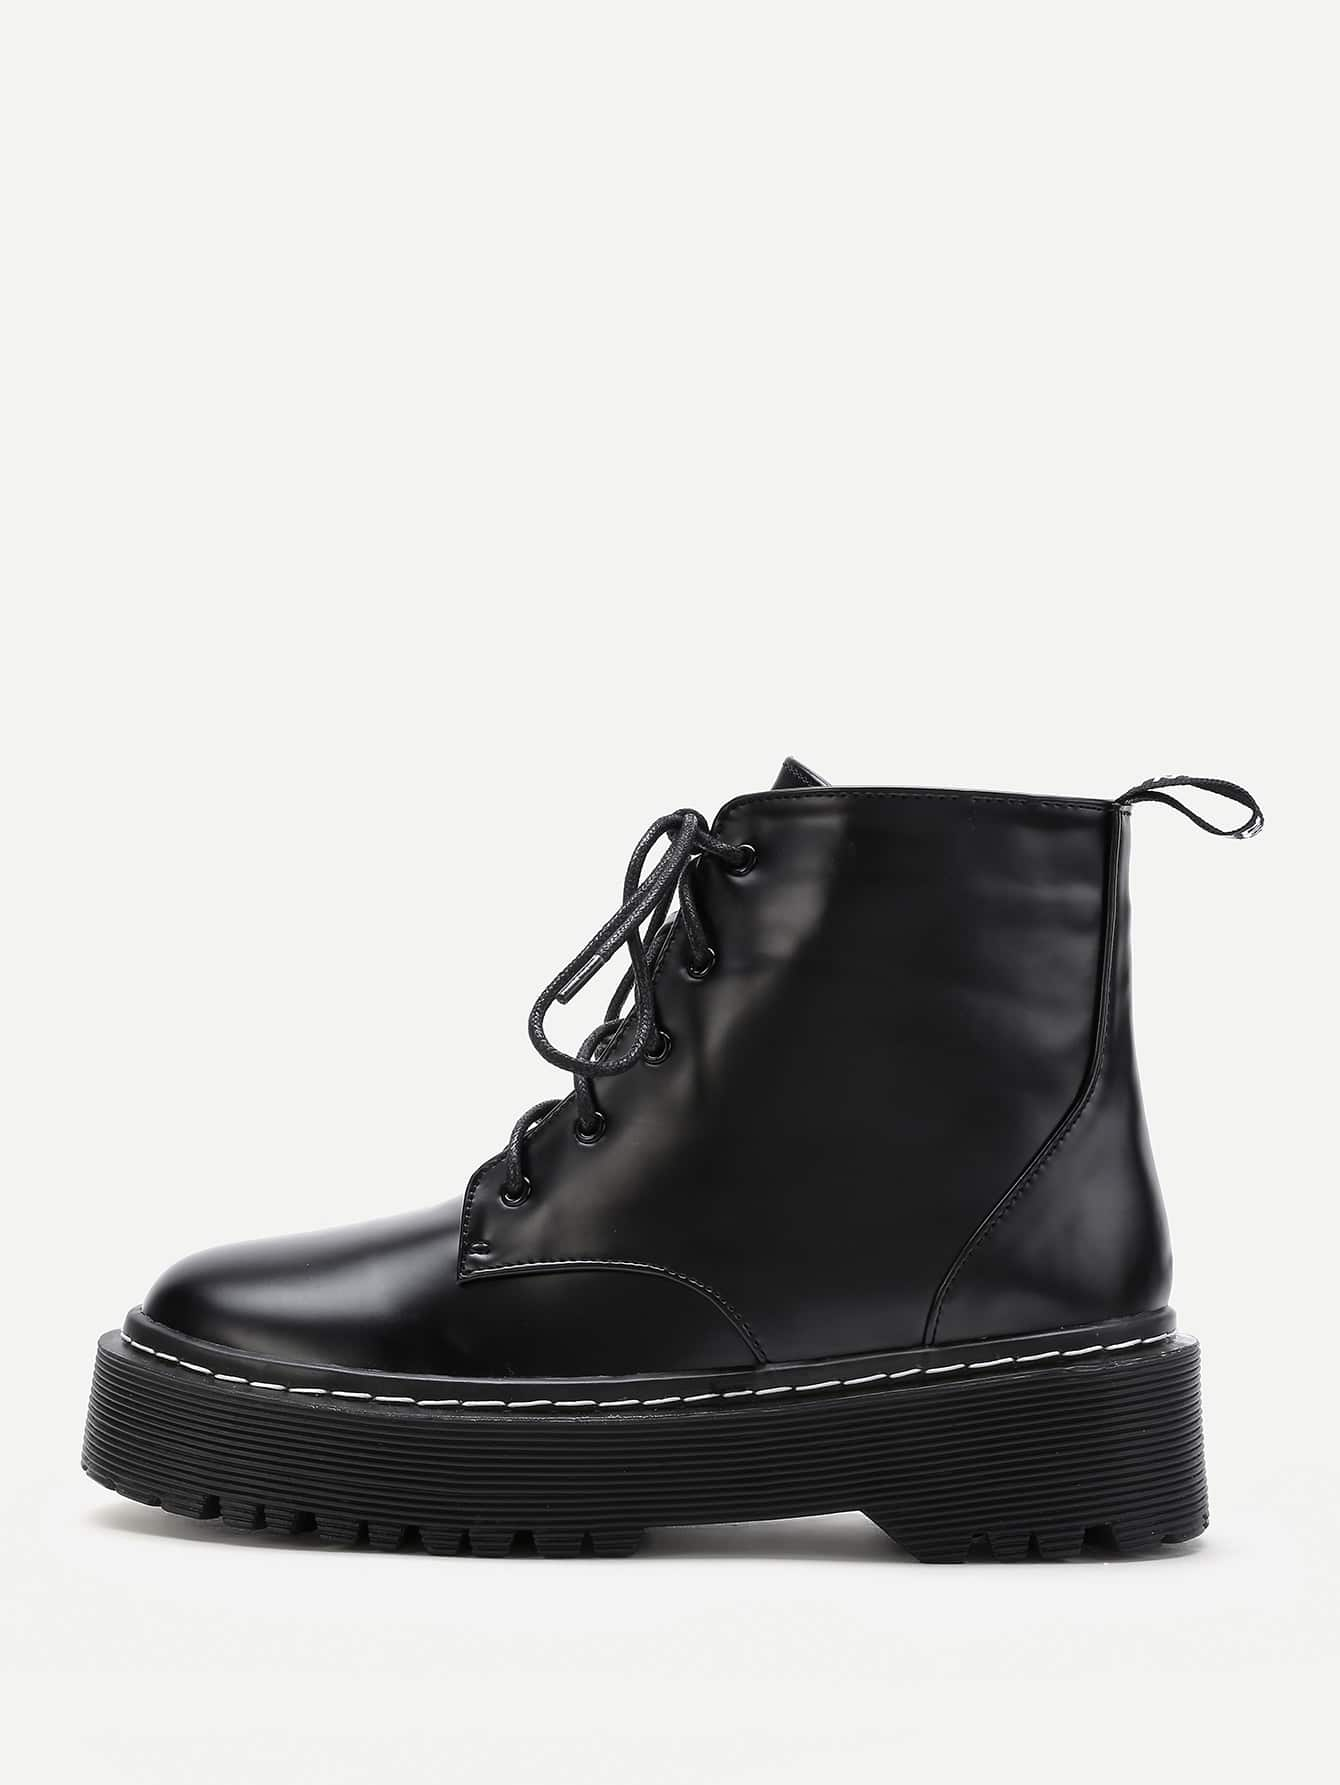 PU Lace Up Rubber Sole Short Boots